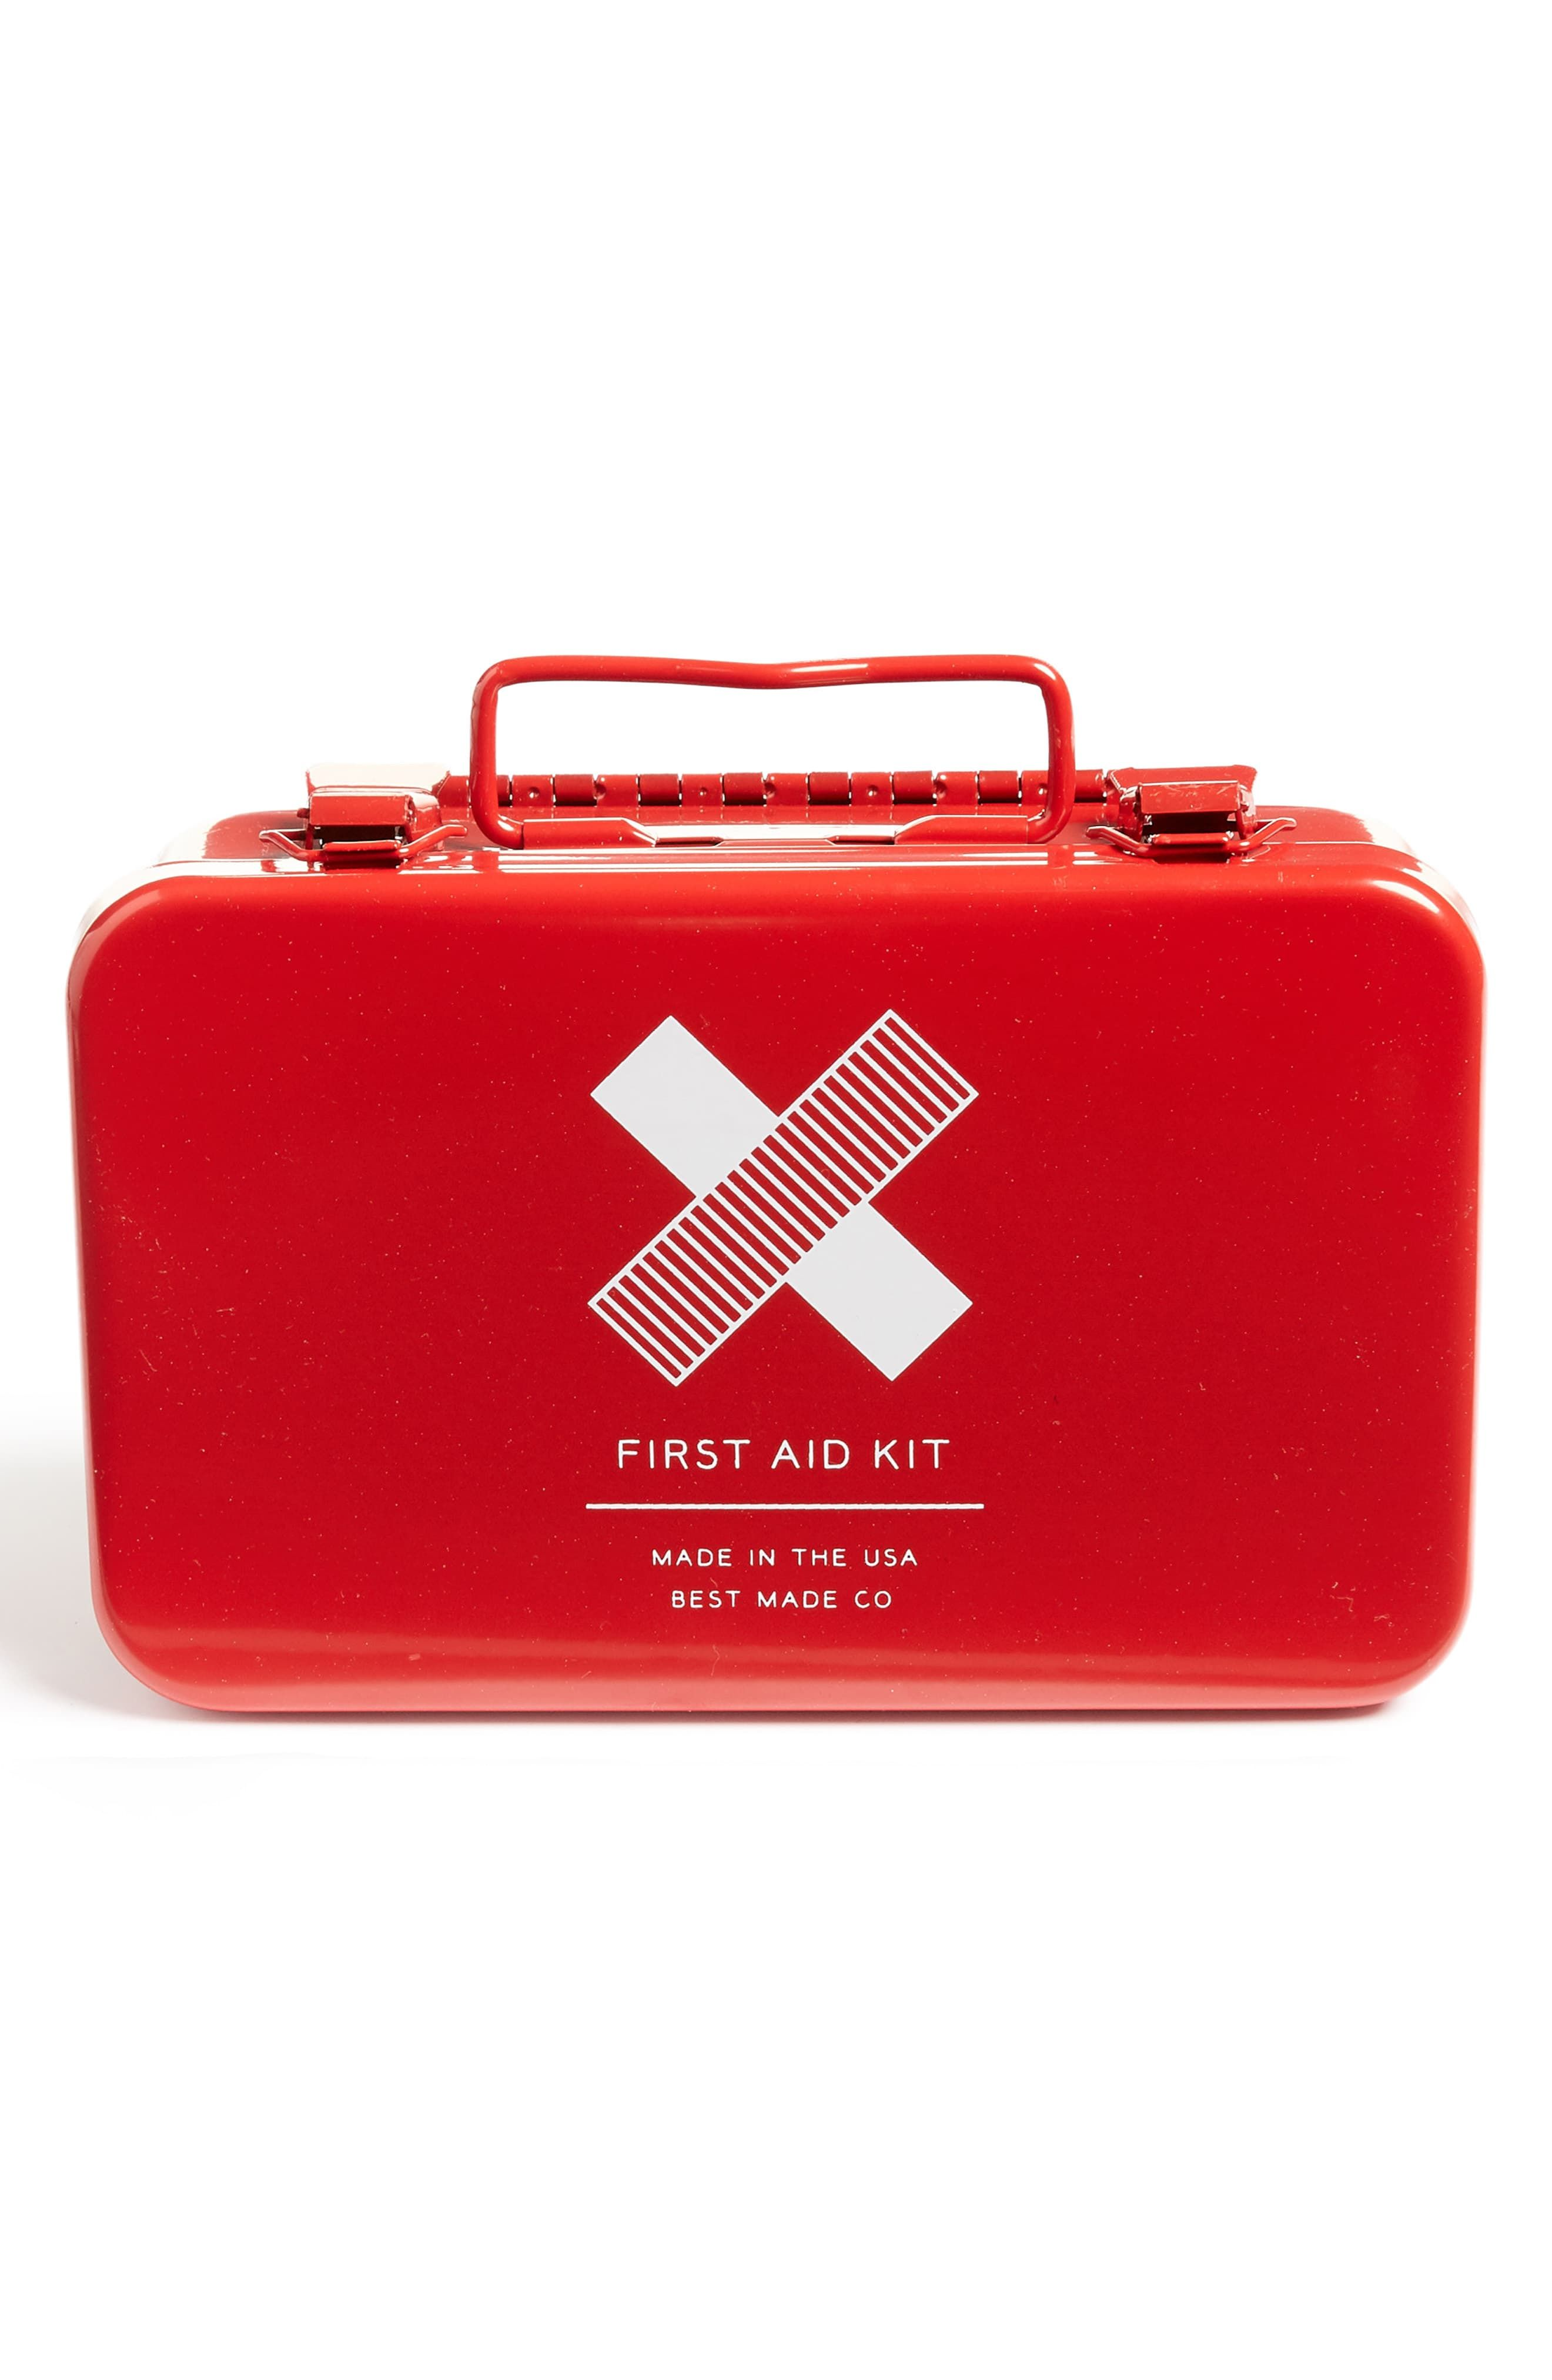 Best Made Co Small First Aid Kit Nordstrom First Aid Kit First Aid For Kids Cool Things To Make